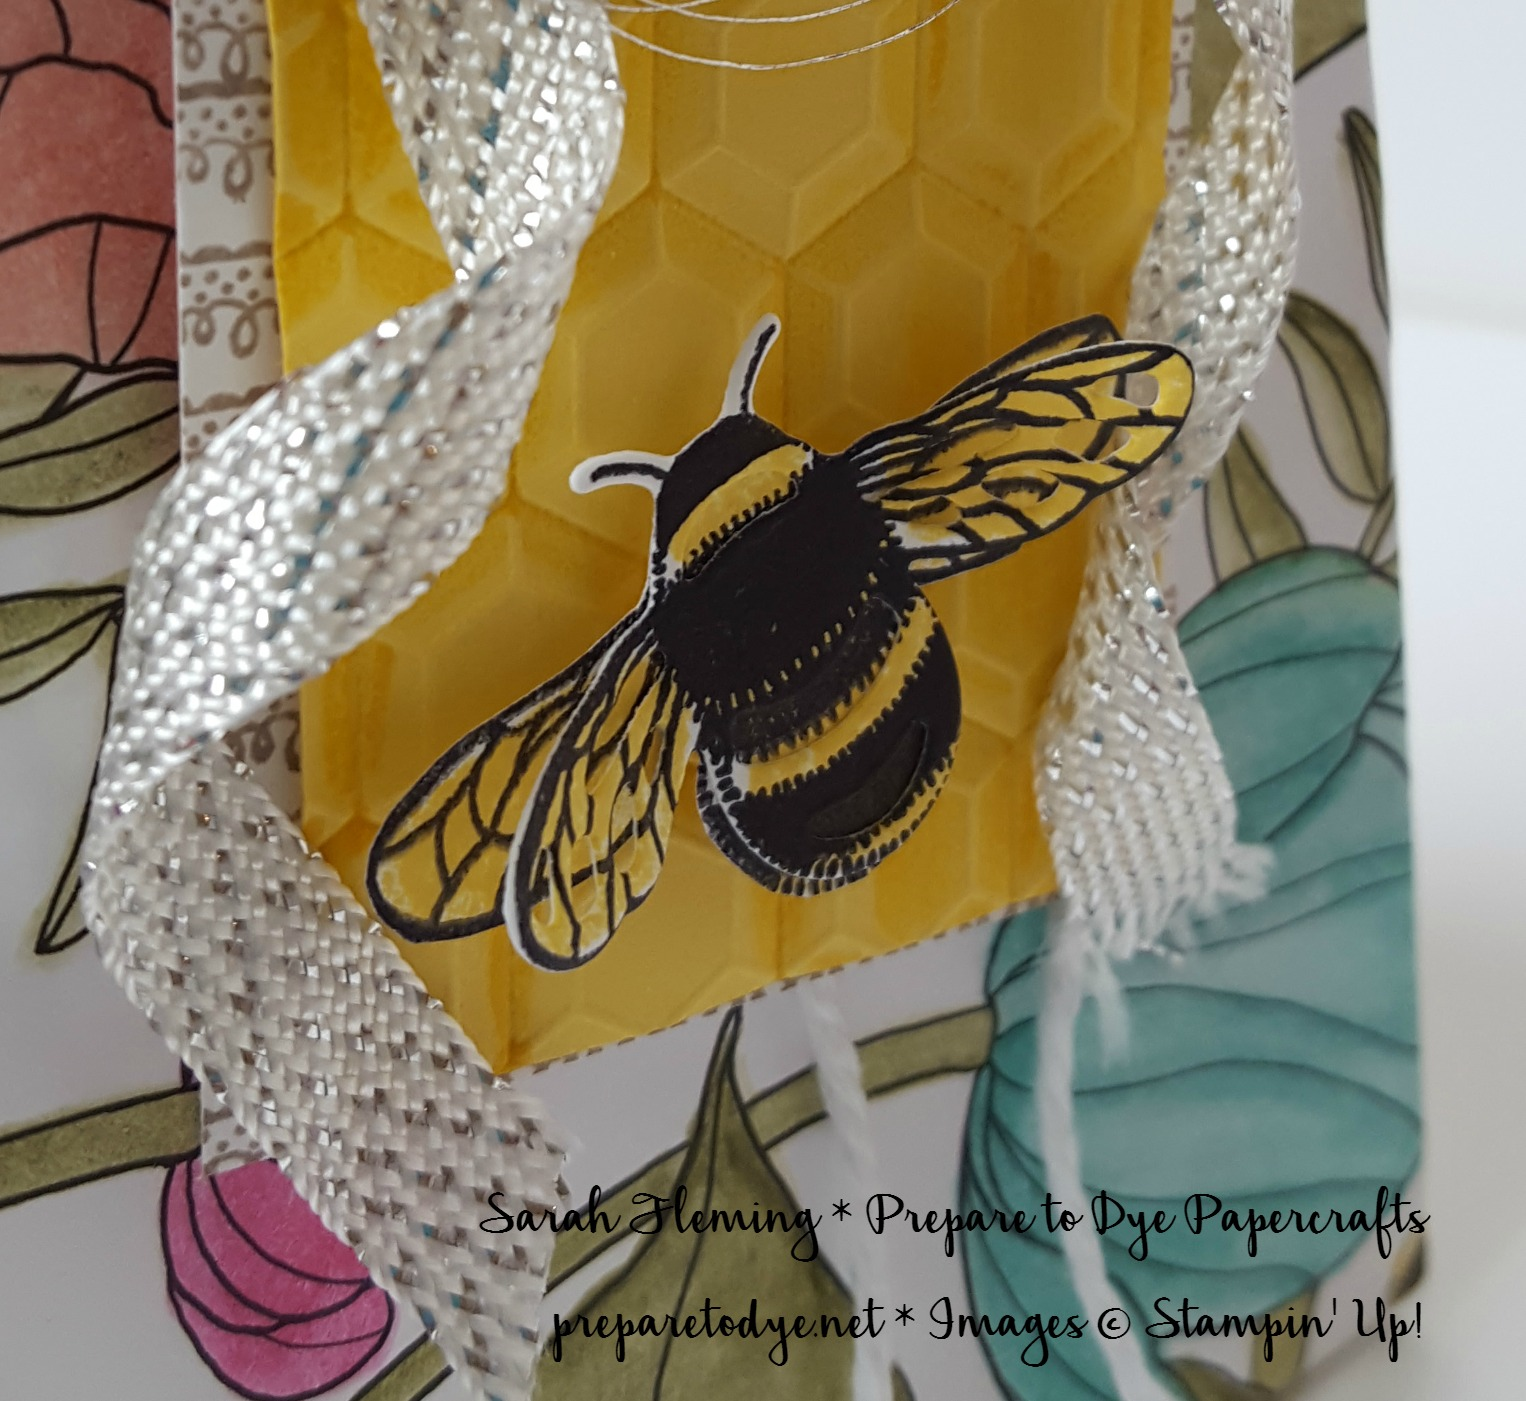 Stampin' Up! Dragonfly Dreams bundle and Hexagons Dynamic embossing folder - Sarah Fleming - Prepare to Dye Papercrafts